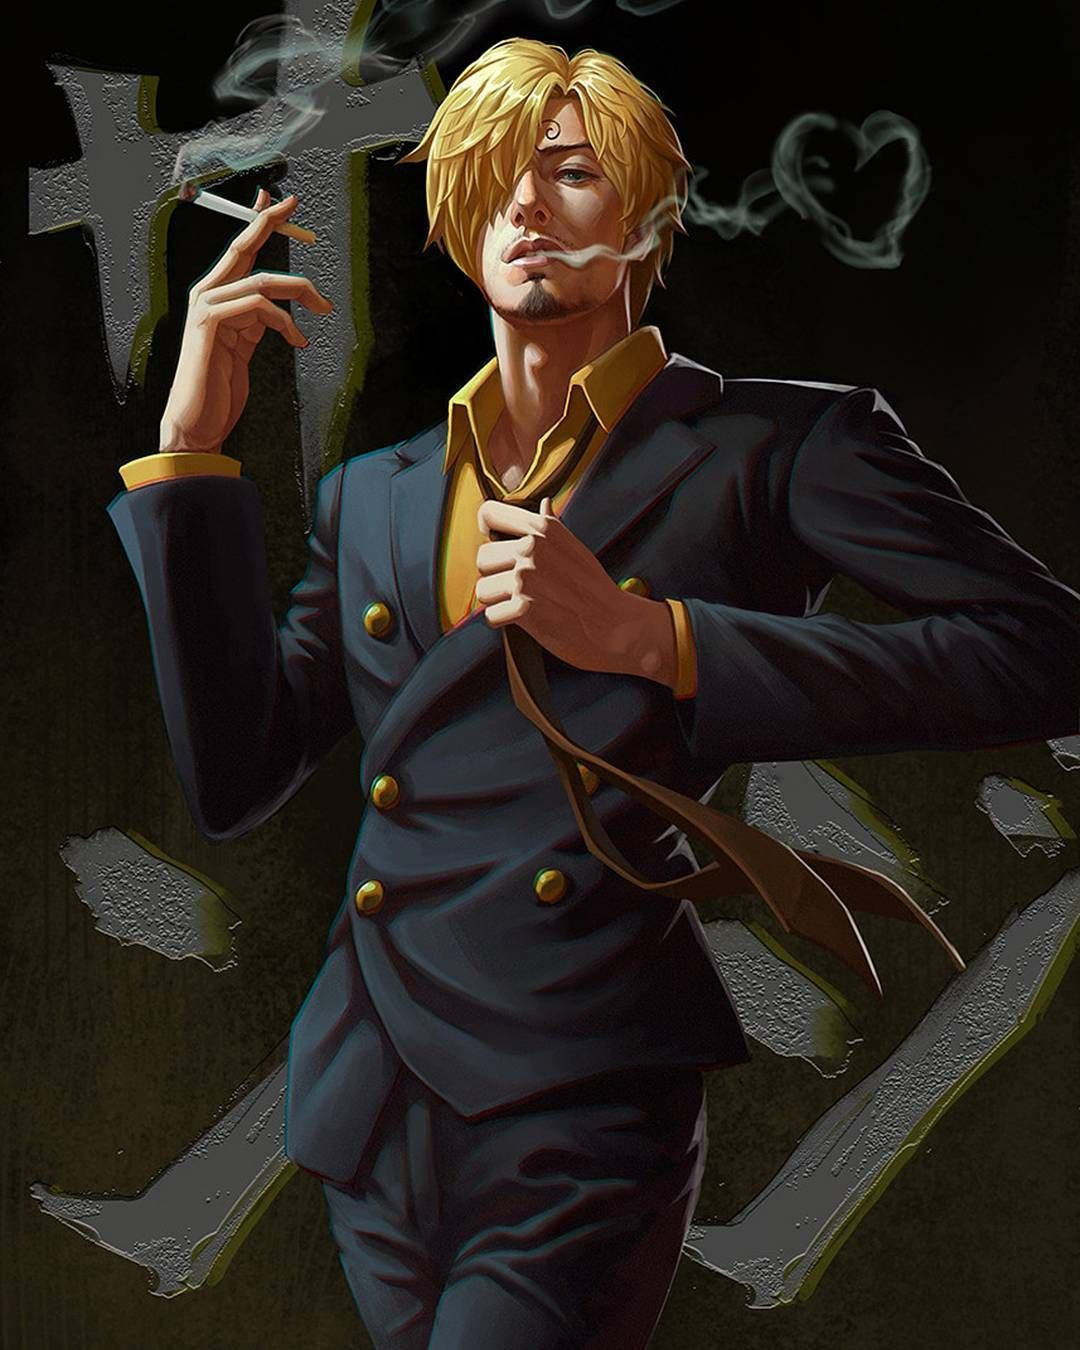 Sanji One Piece Onepiece Op Anime Manga Plusultra One Piece Images One Piece Drawing One Piece Manga